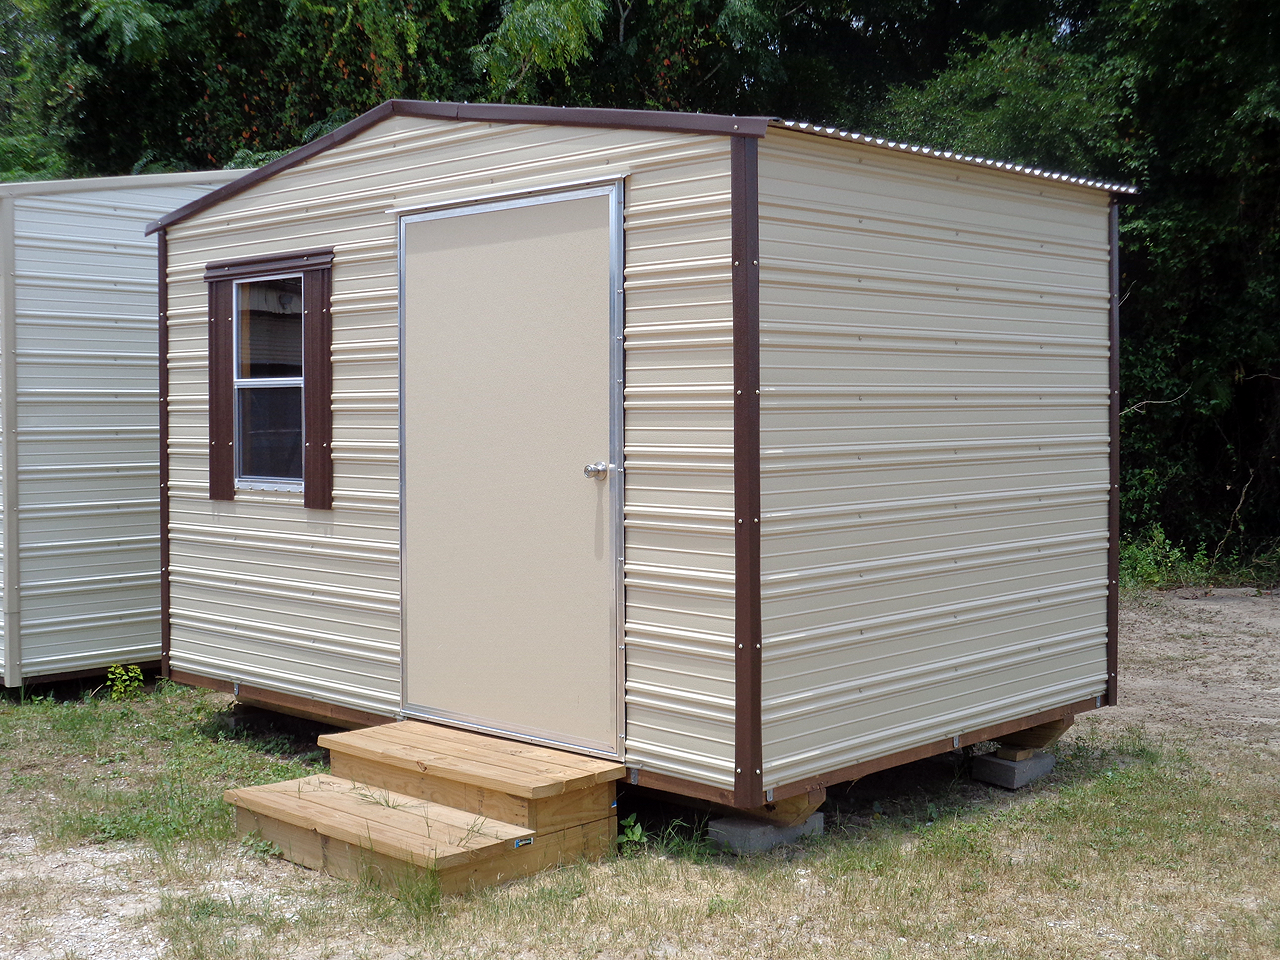 storage polyester ft xl sheds shed grays plastic p x flowerhouse house portable